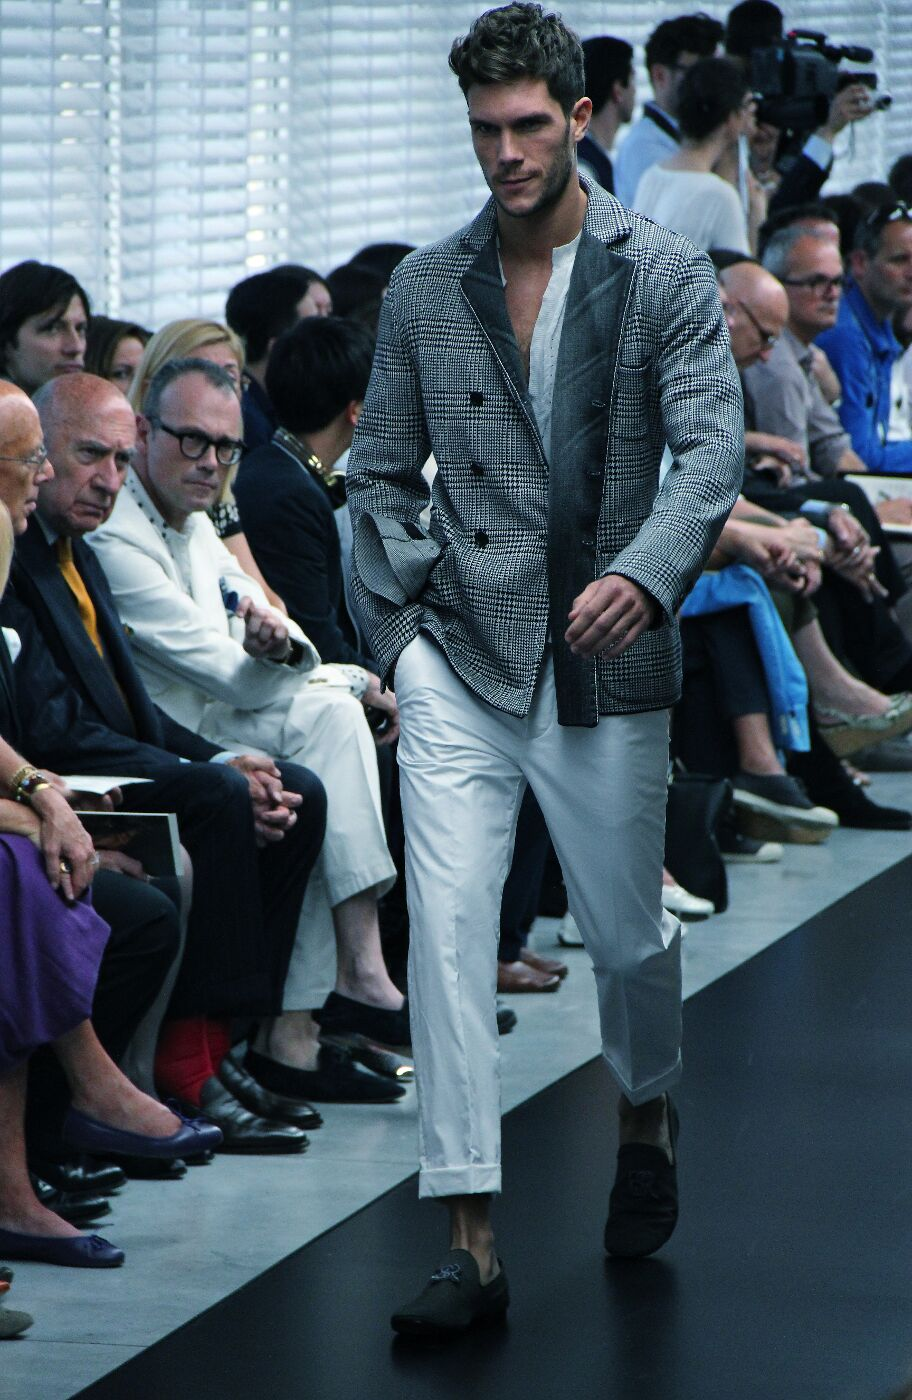 ermanno-scervino-spring-summer-2012-men-collection-milano-fashion-week-2012-ermanno-scervino-primavera-estate-fashion-show-catwalk